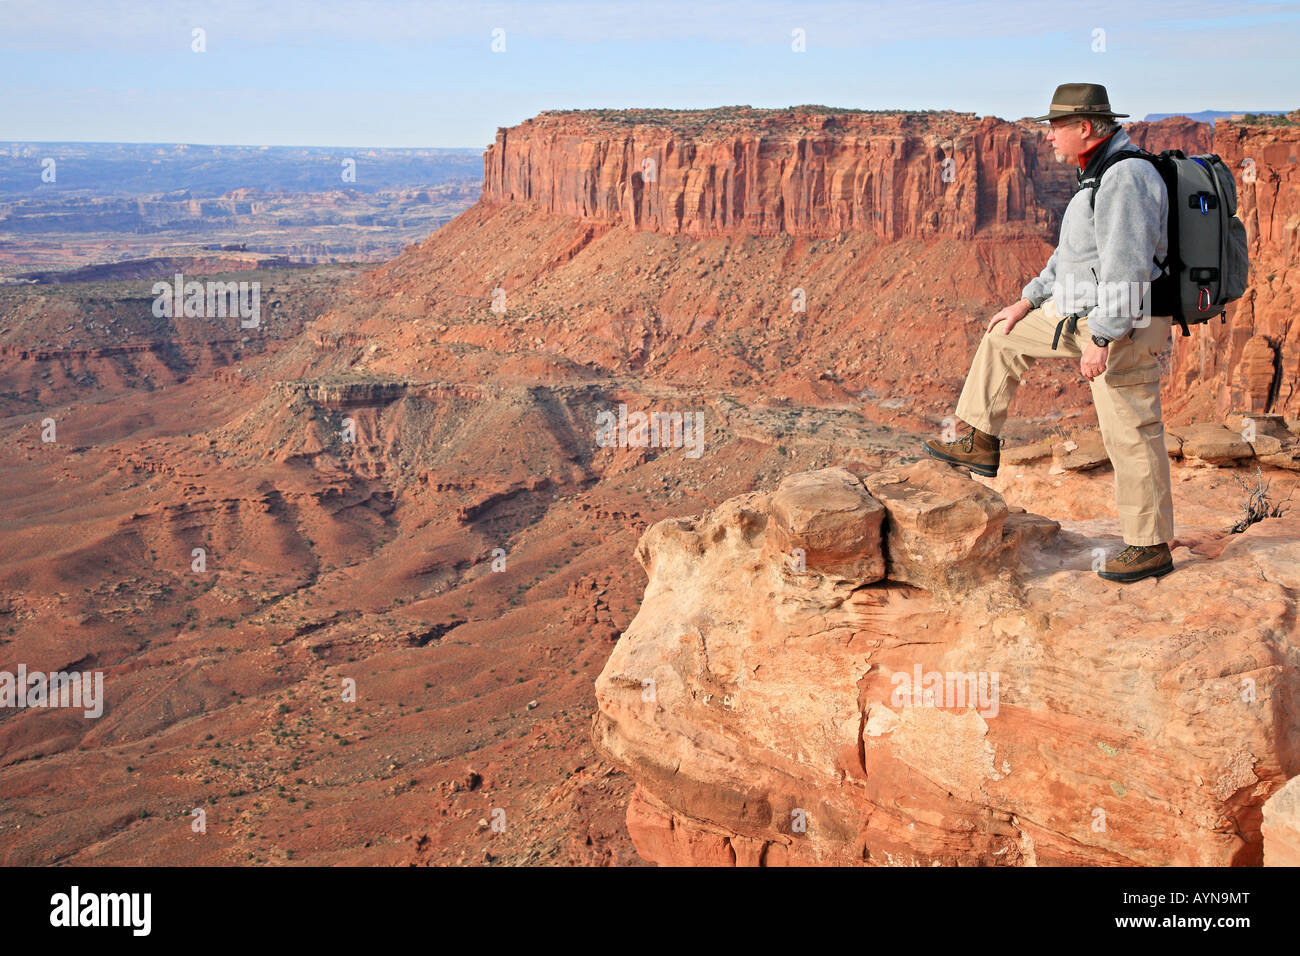 Hiker camper canyon rock sandstone pack man cliff over look view scenic Canyonland Park Utah Grand View - Stock Image